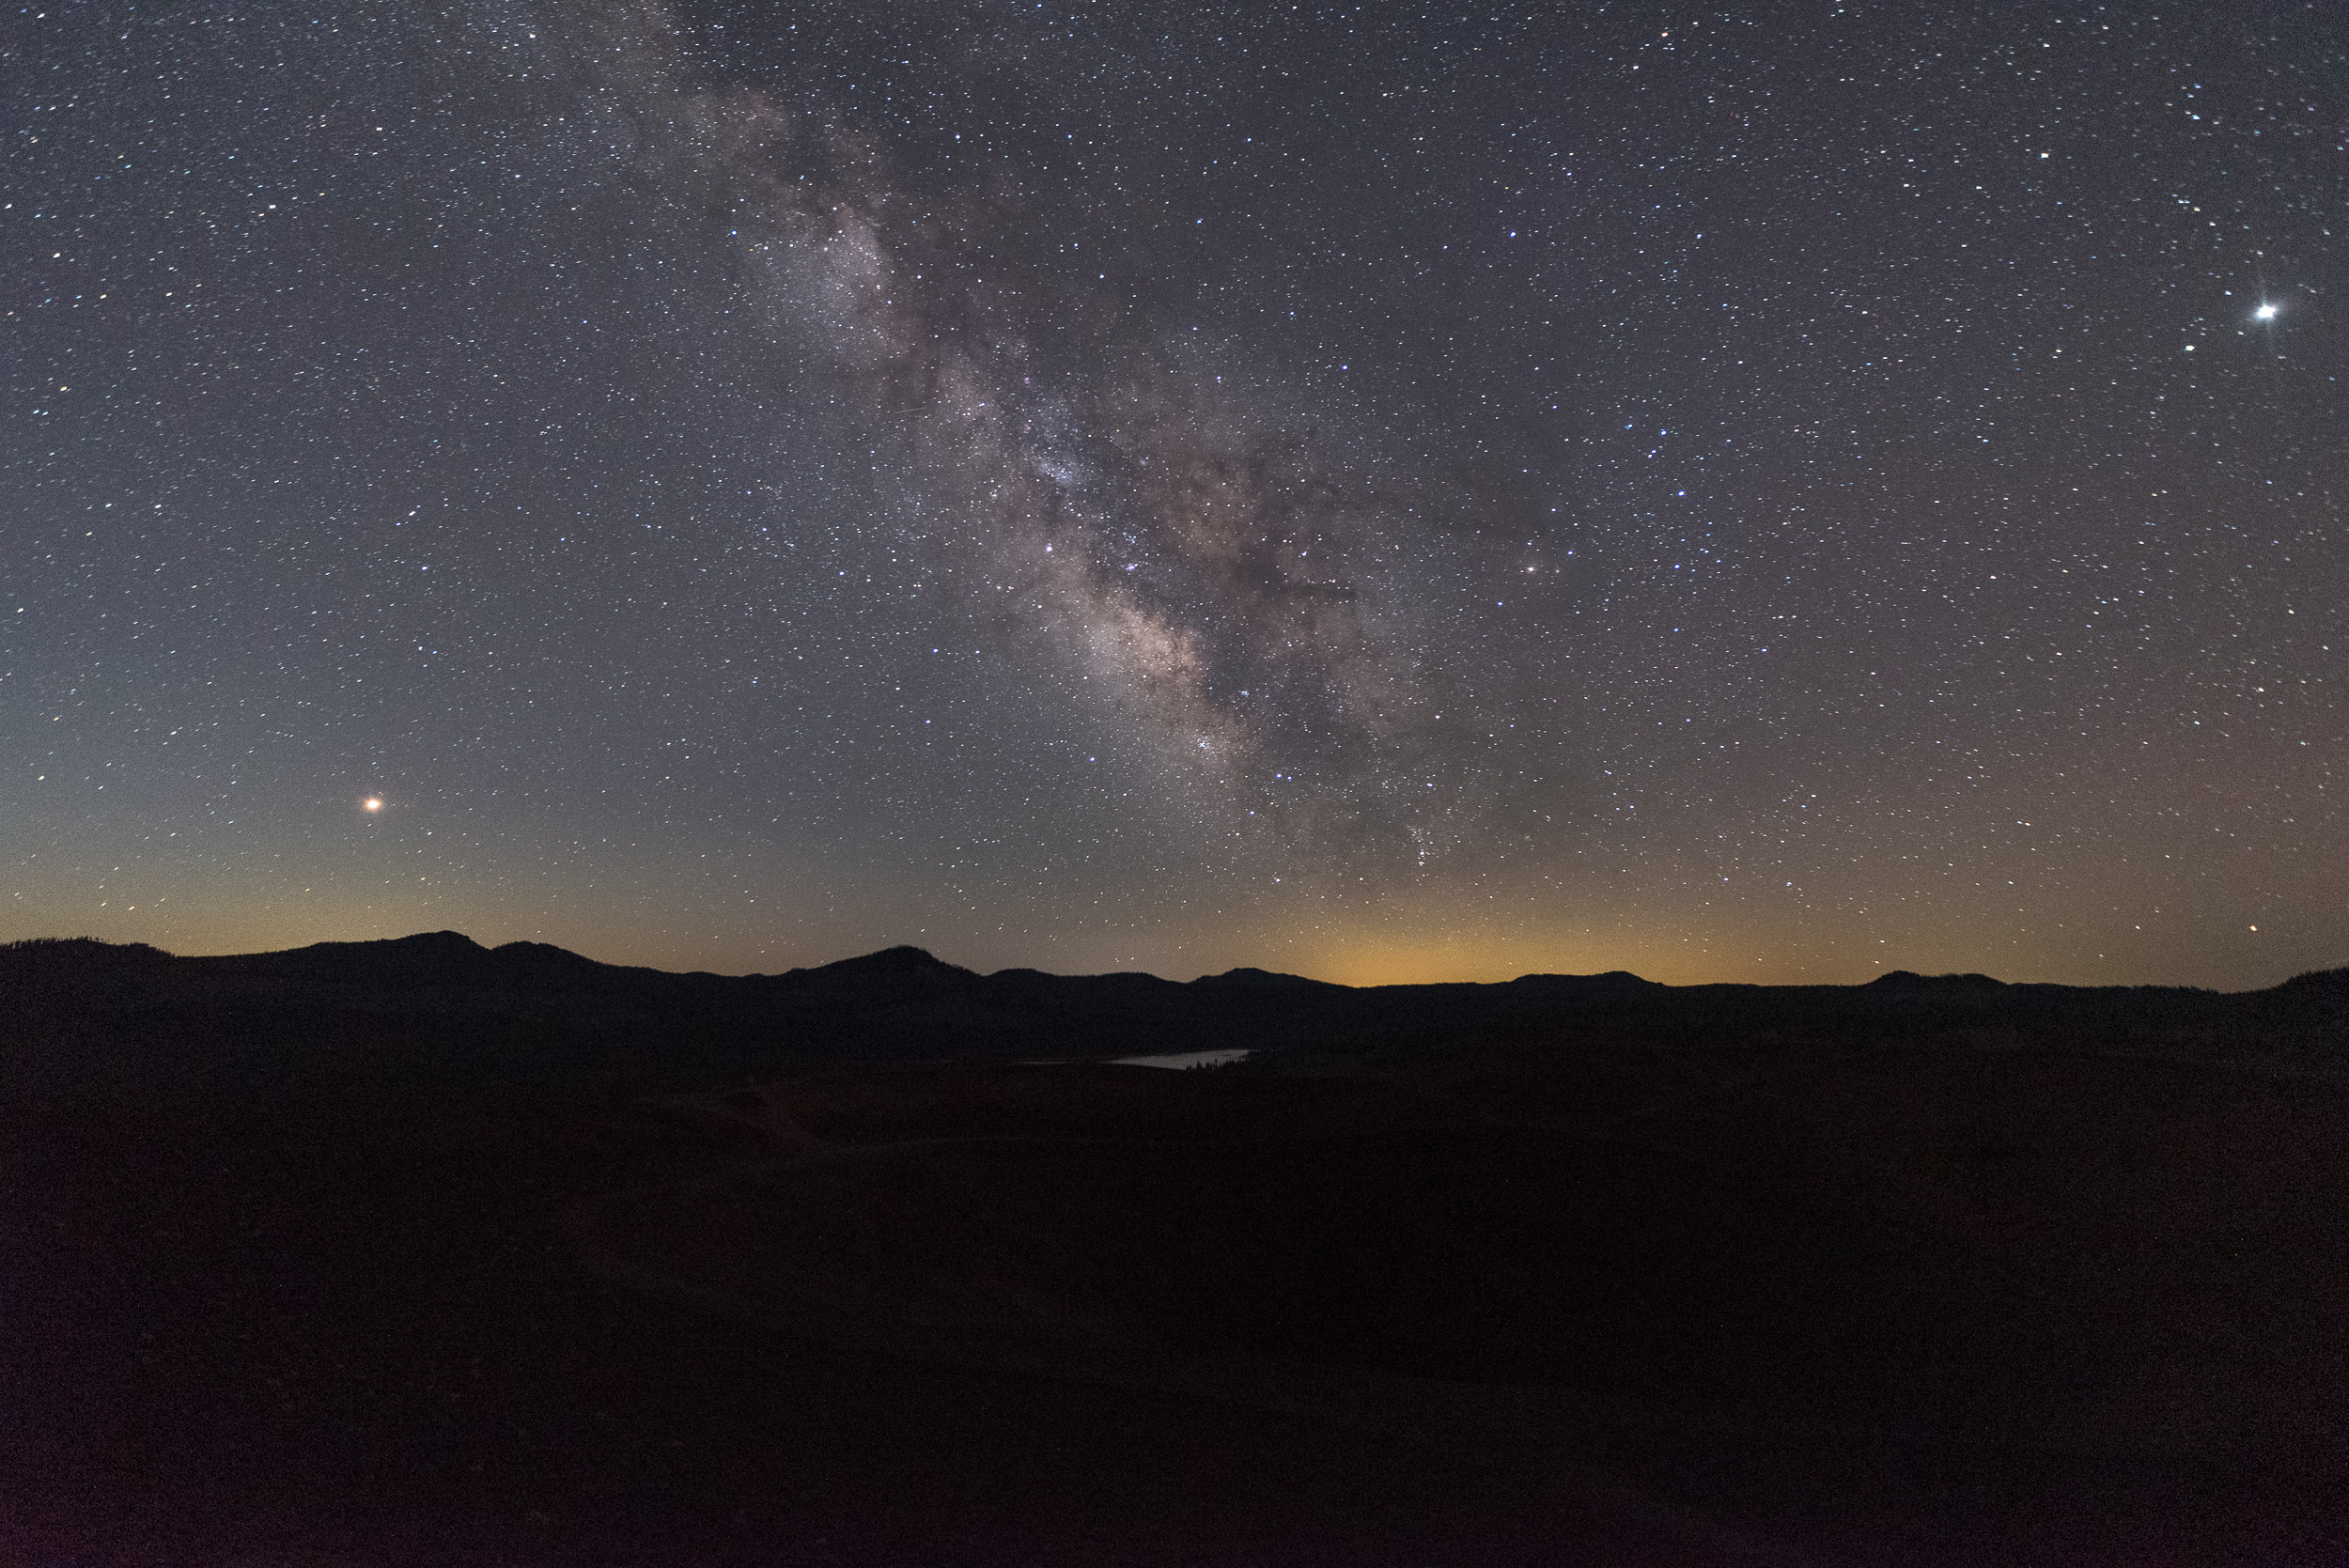 Test image looking across Cinder Cone to the Milky Way, Mars, Saturn and Jupiter. Nikon D750, Irix 15mm f/2.4 lens. 25 seconds, f/3.2, ISO 6400.